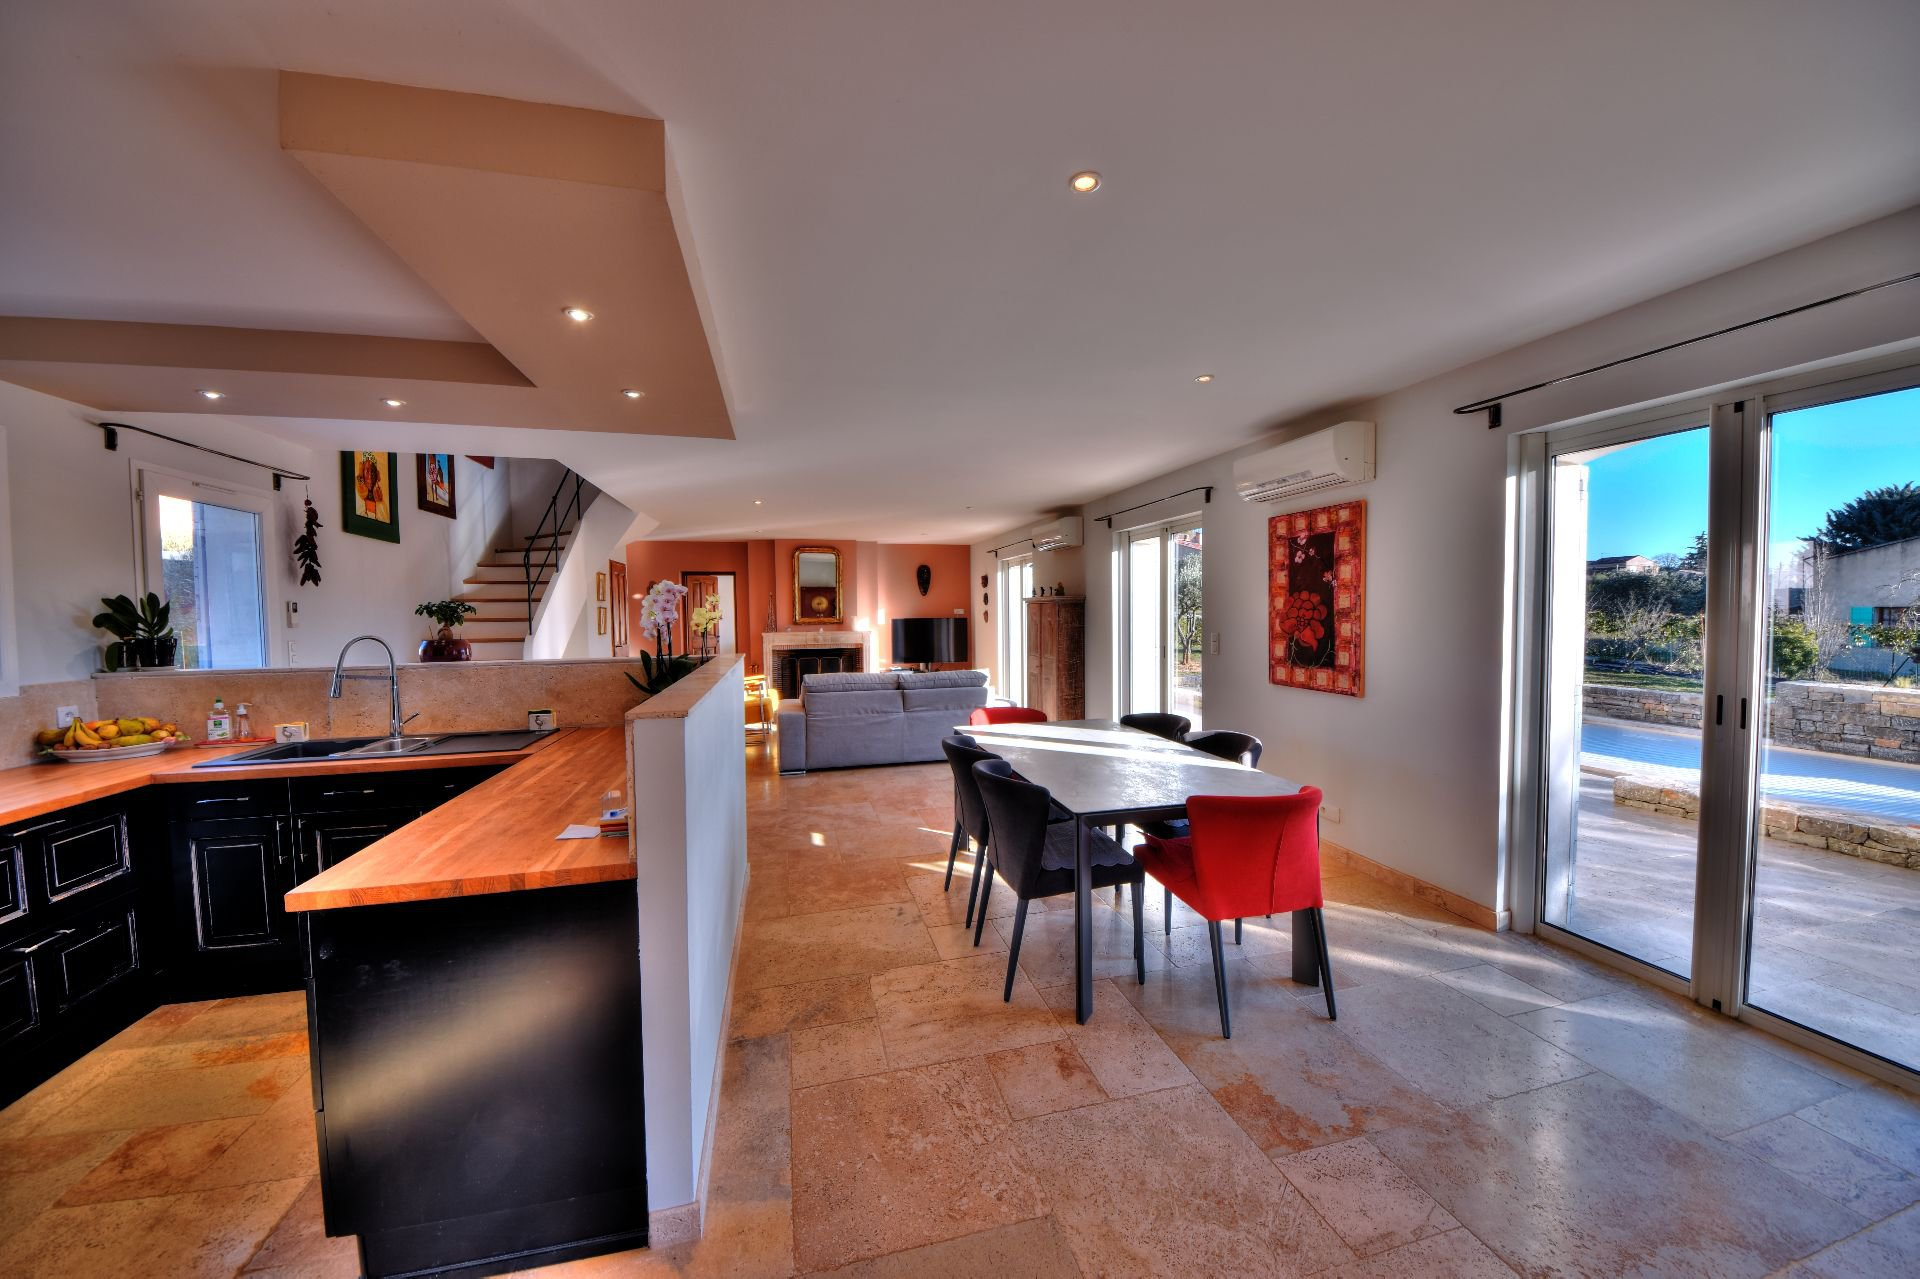 View of the entrance of the Bastide 4 bedrooms with swimming pool Aups, Var, Provence